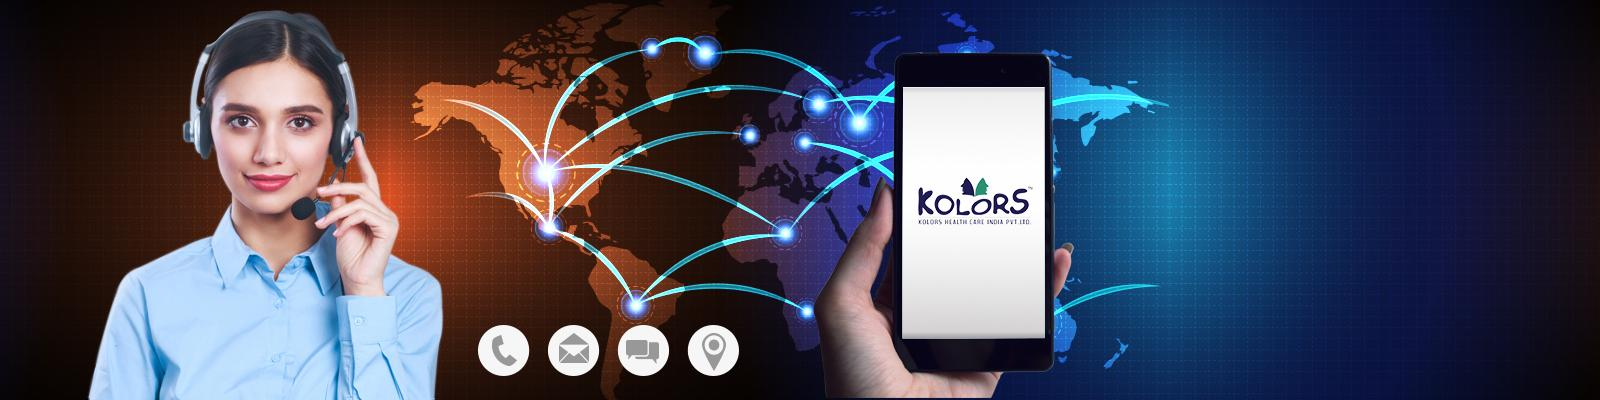 Contact Kolors - We Provide Best Treatments For Weight Management, Hair Loss And Skin Care Treatment